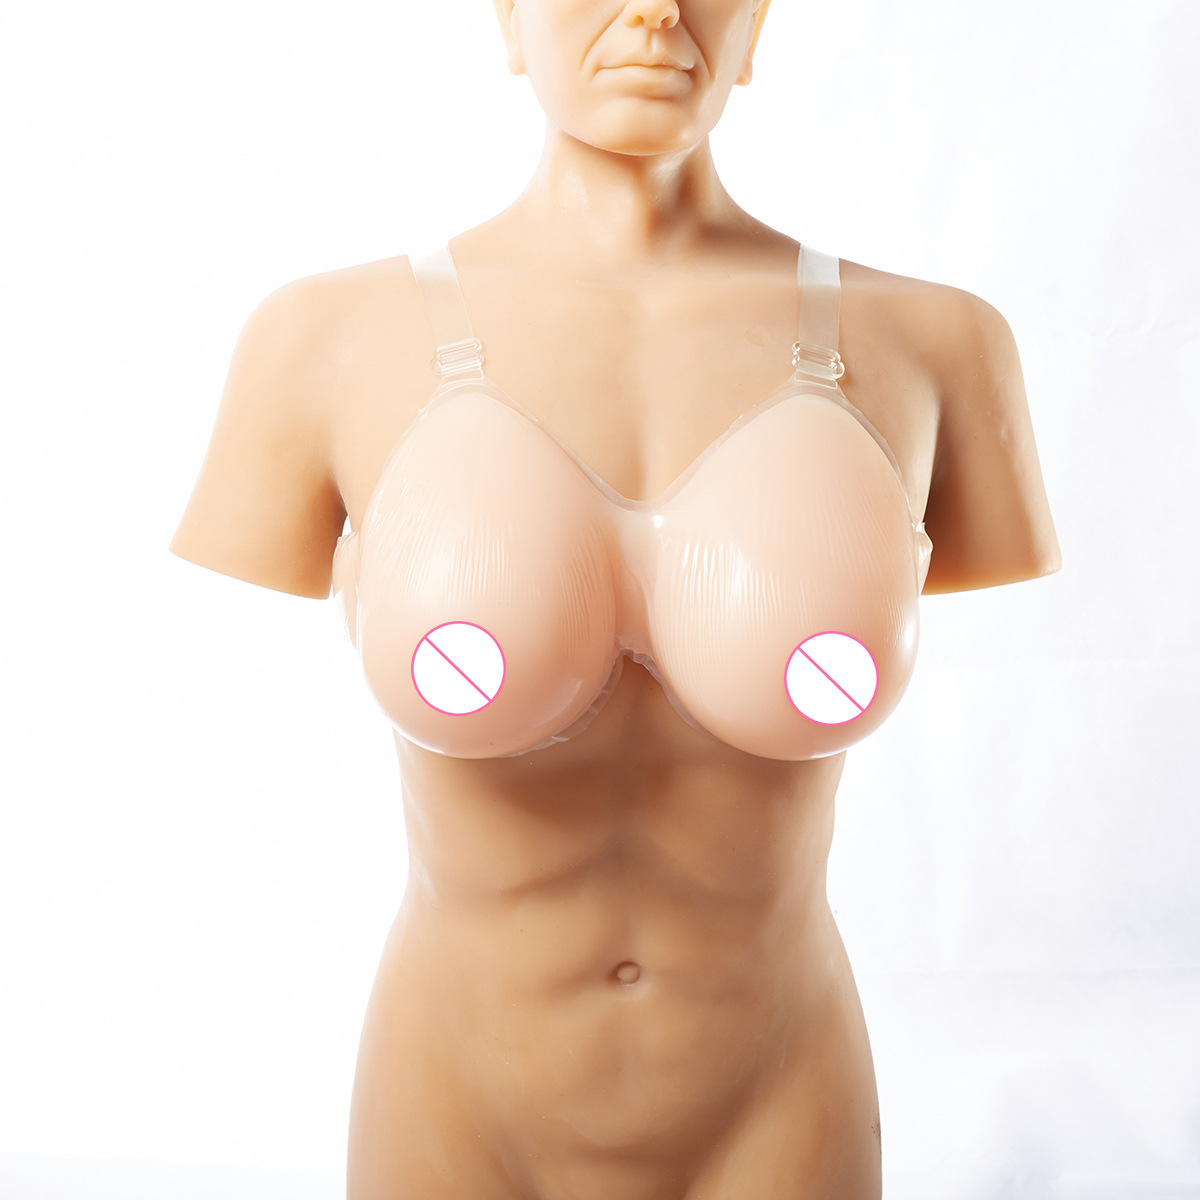 1pcs Wearable Fake Silicone Breast Form Breasts Bust Enhancer Fake Boobs For Cosplay Women Chest Wearing